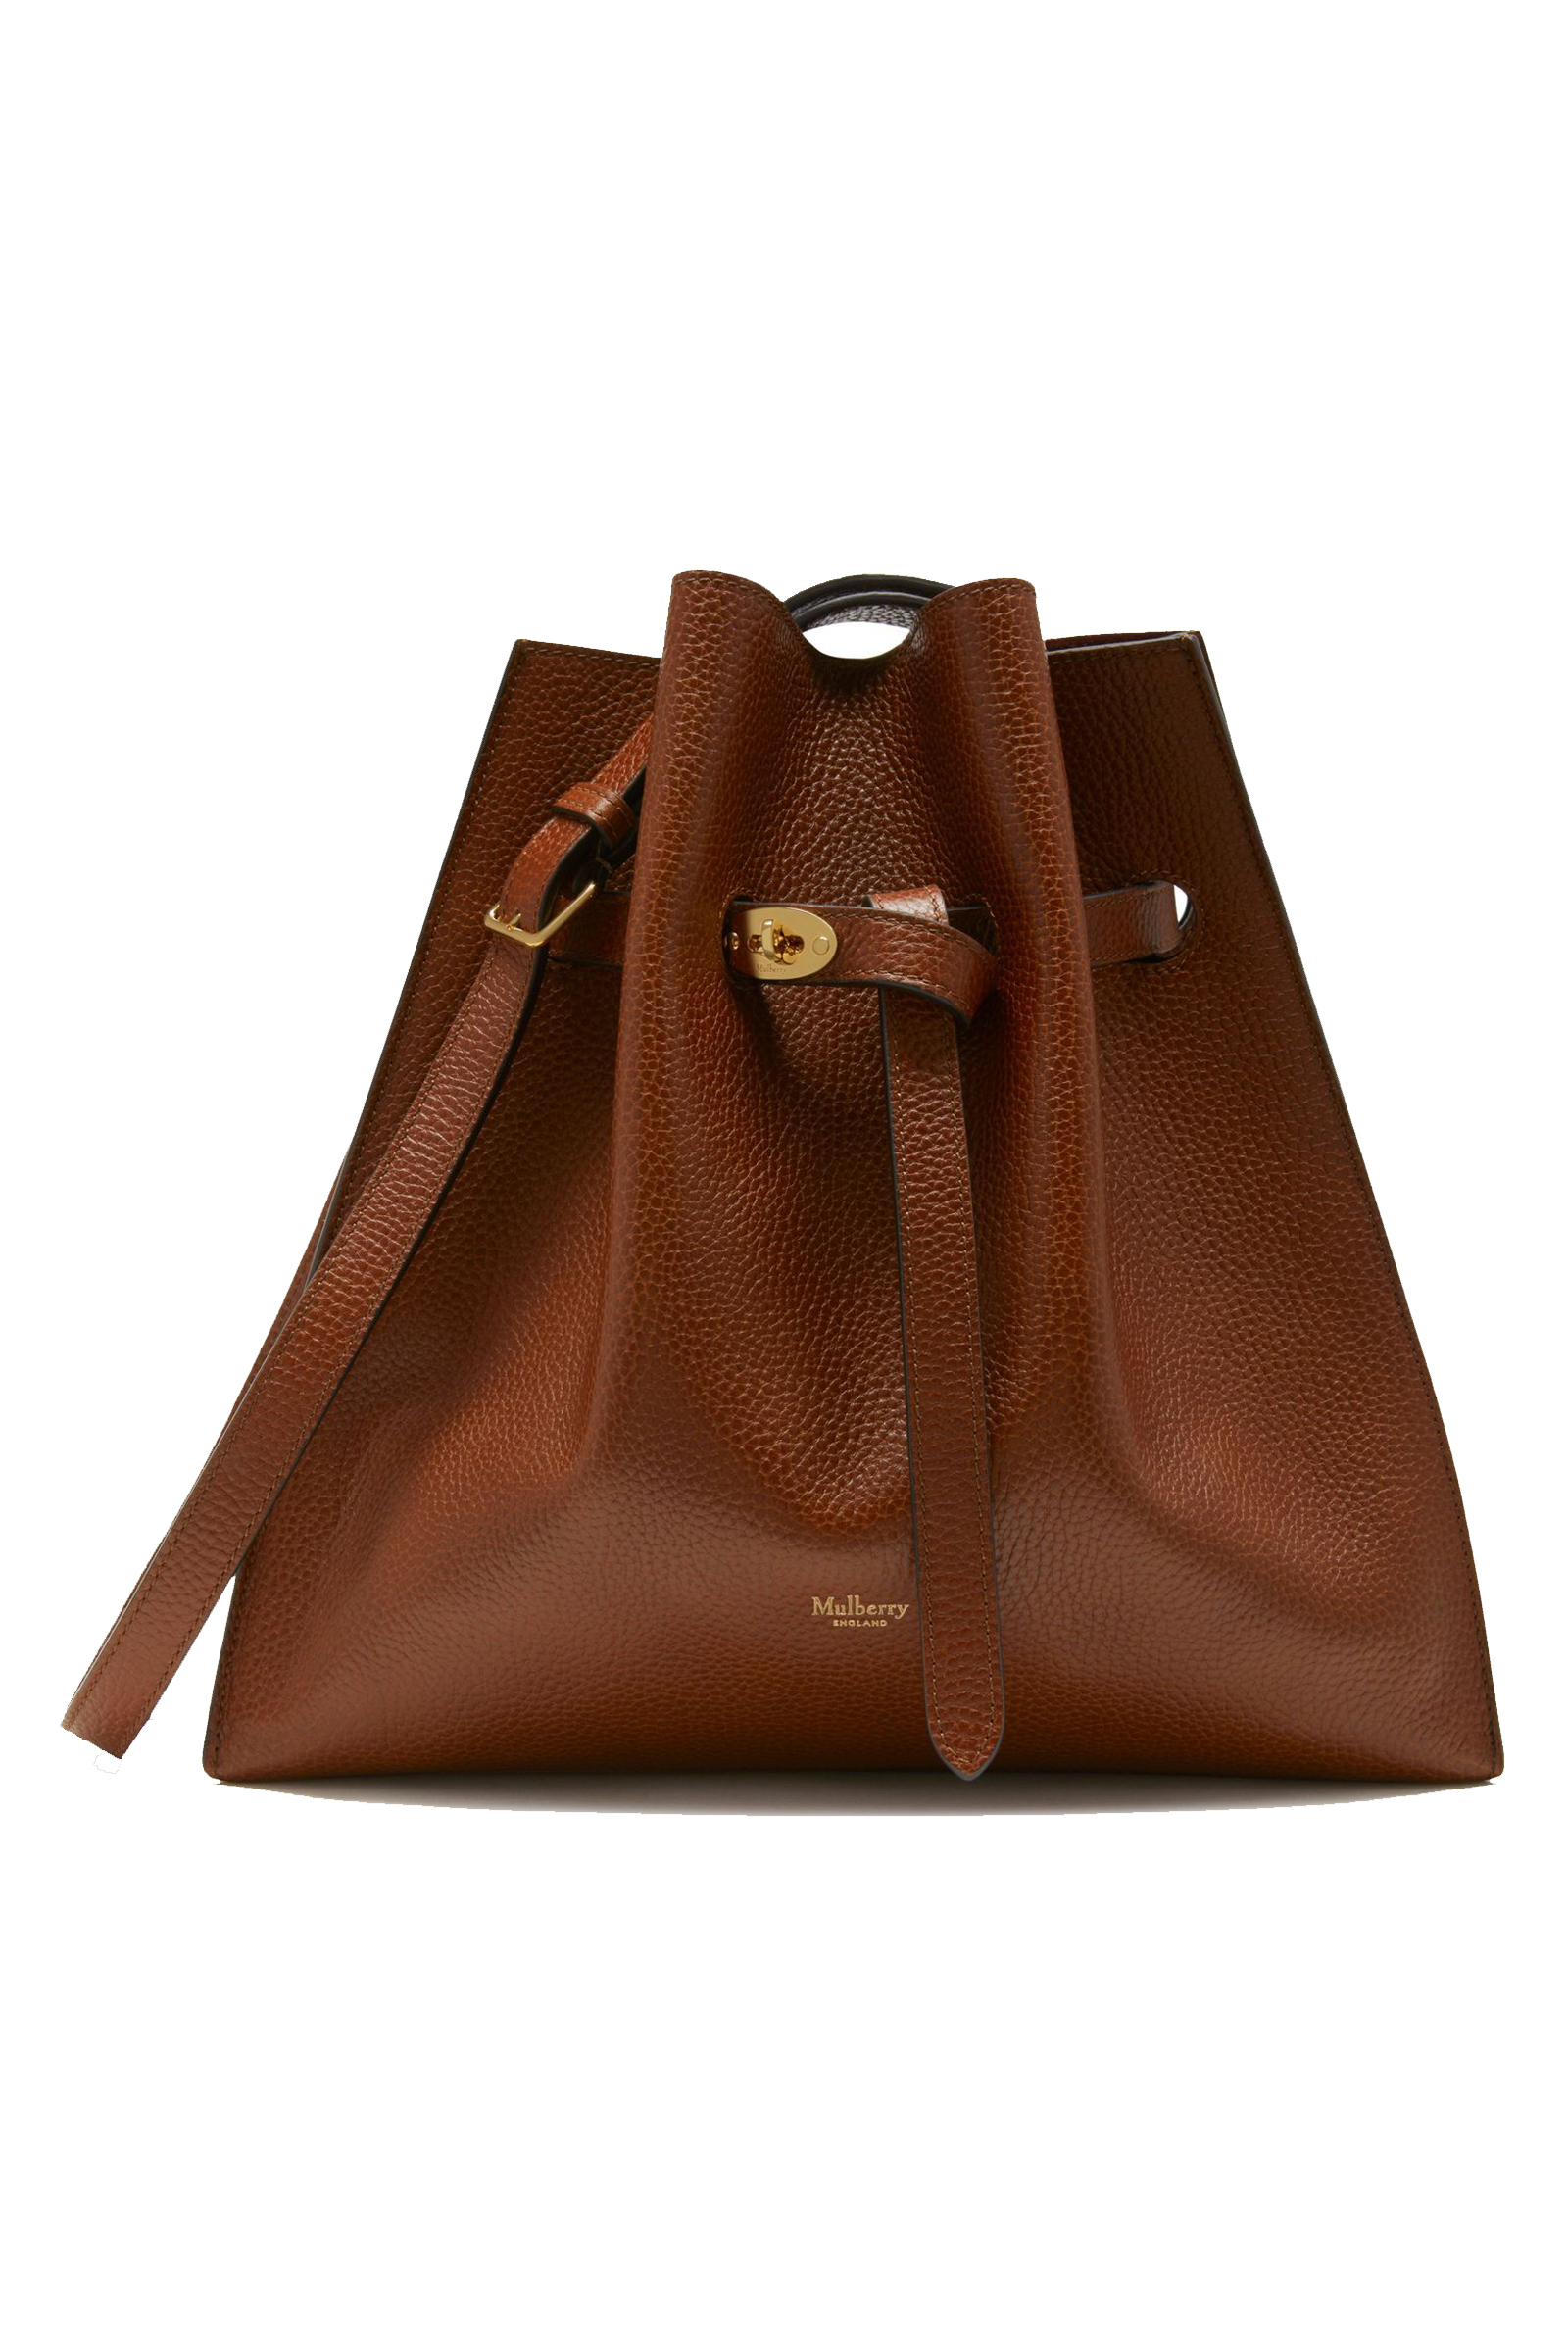 50713a0b2a Mulberry oak brown grain leather drawstring bucket bag